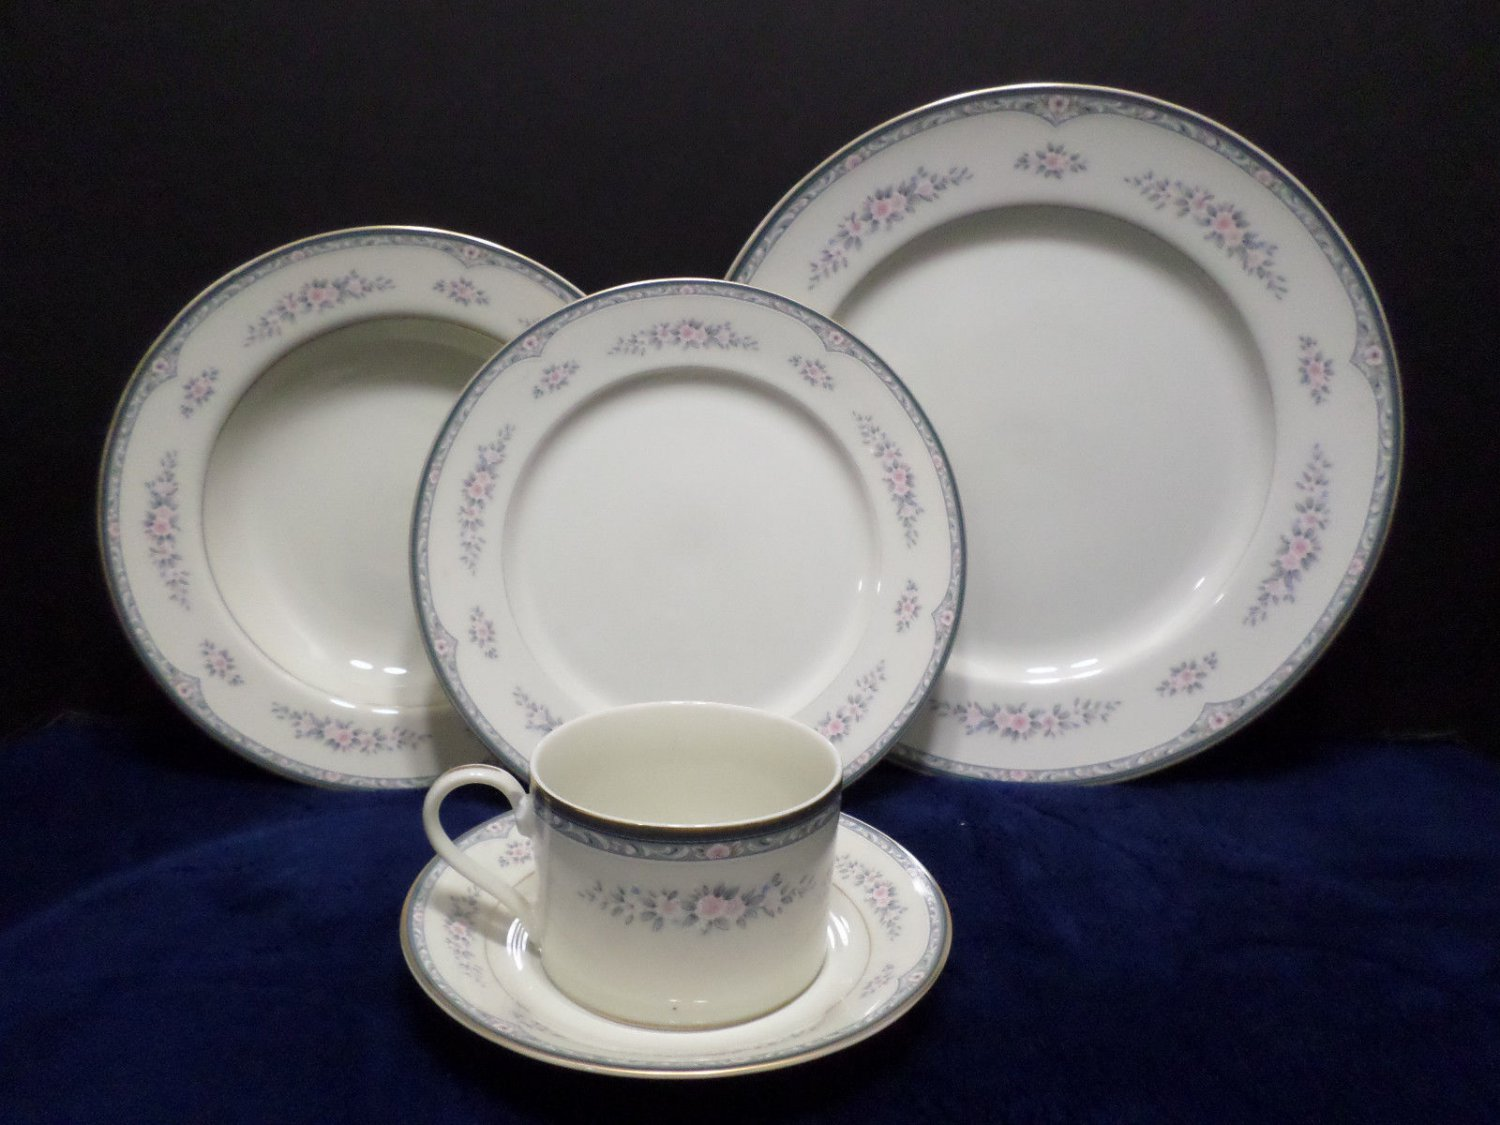 Mikasa 5 pc Place Setting fine china tea rose pattern made in Japan